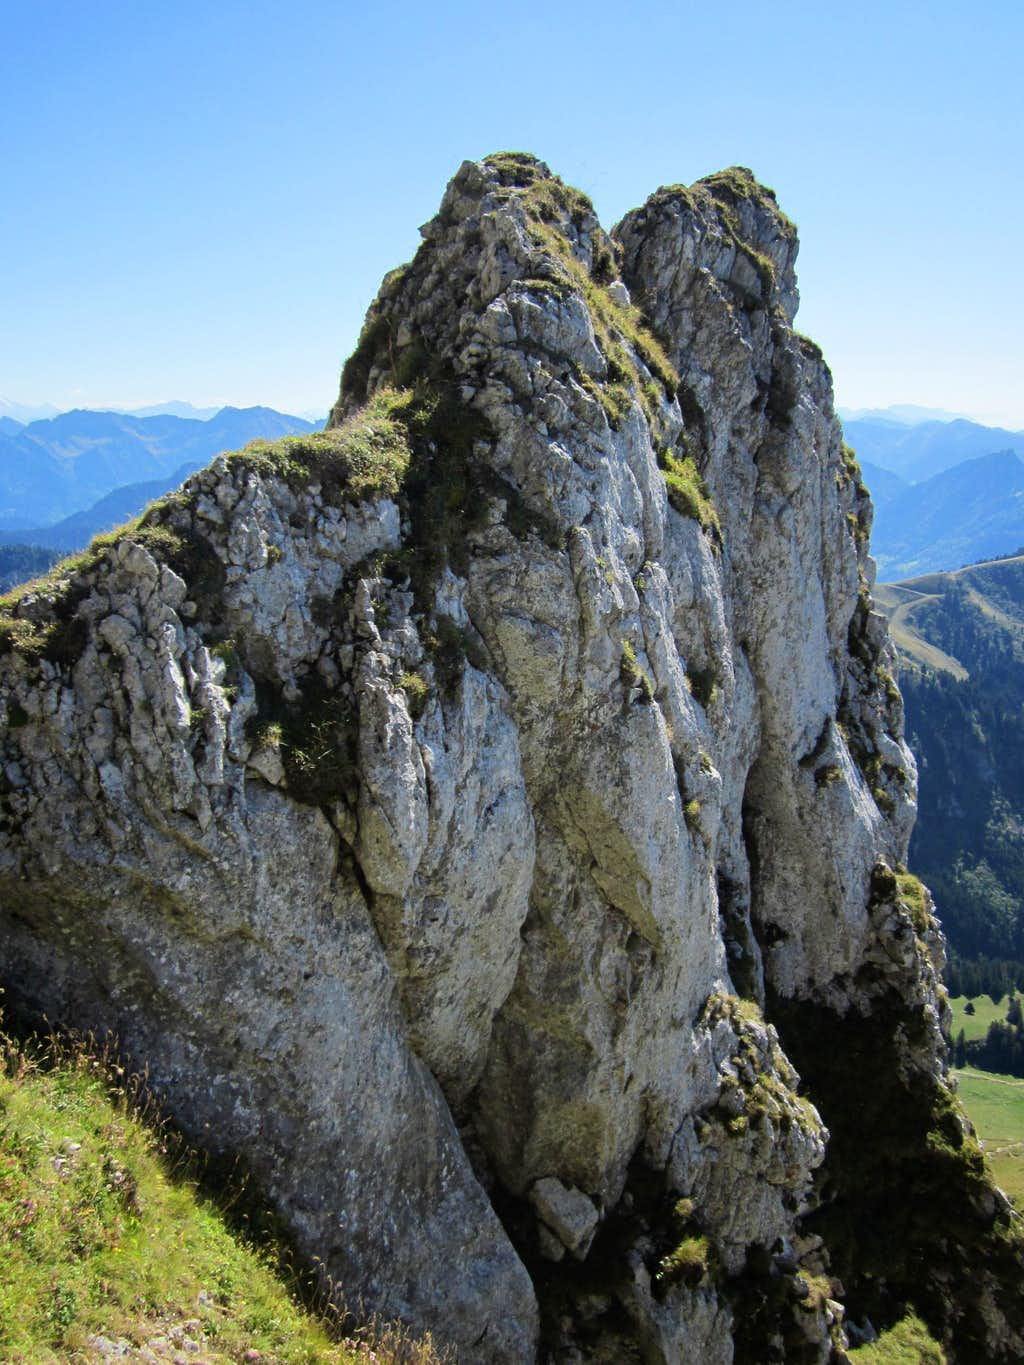 One of the many rock outcrops on Dent d'Oche